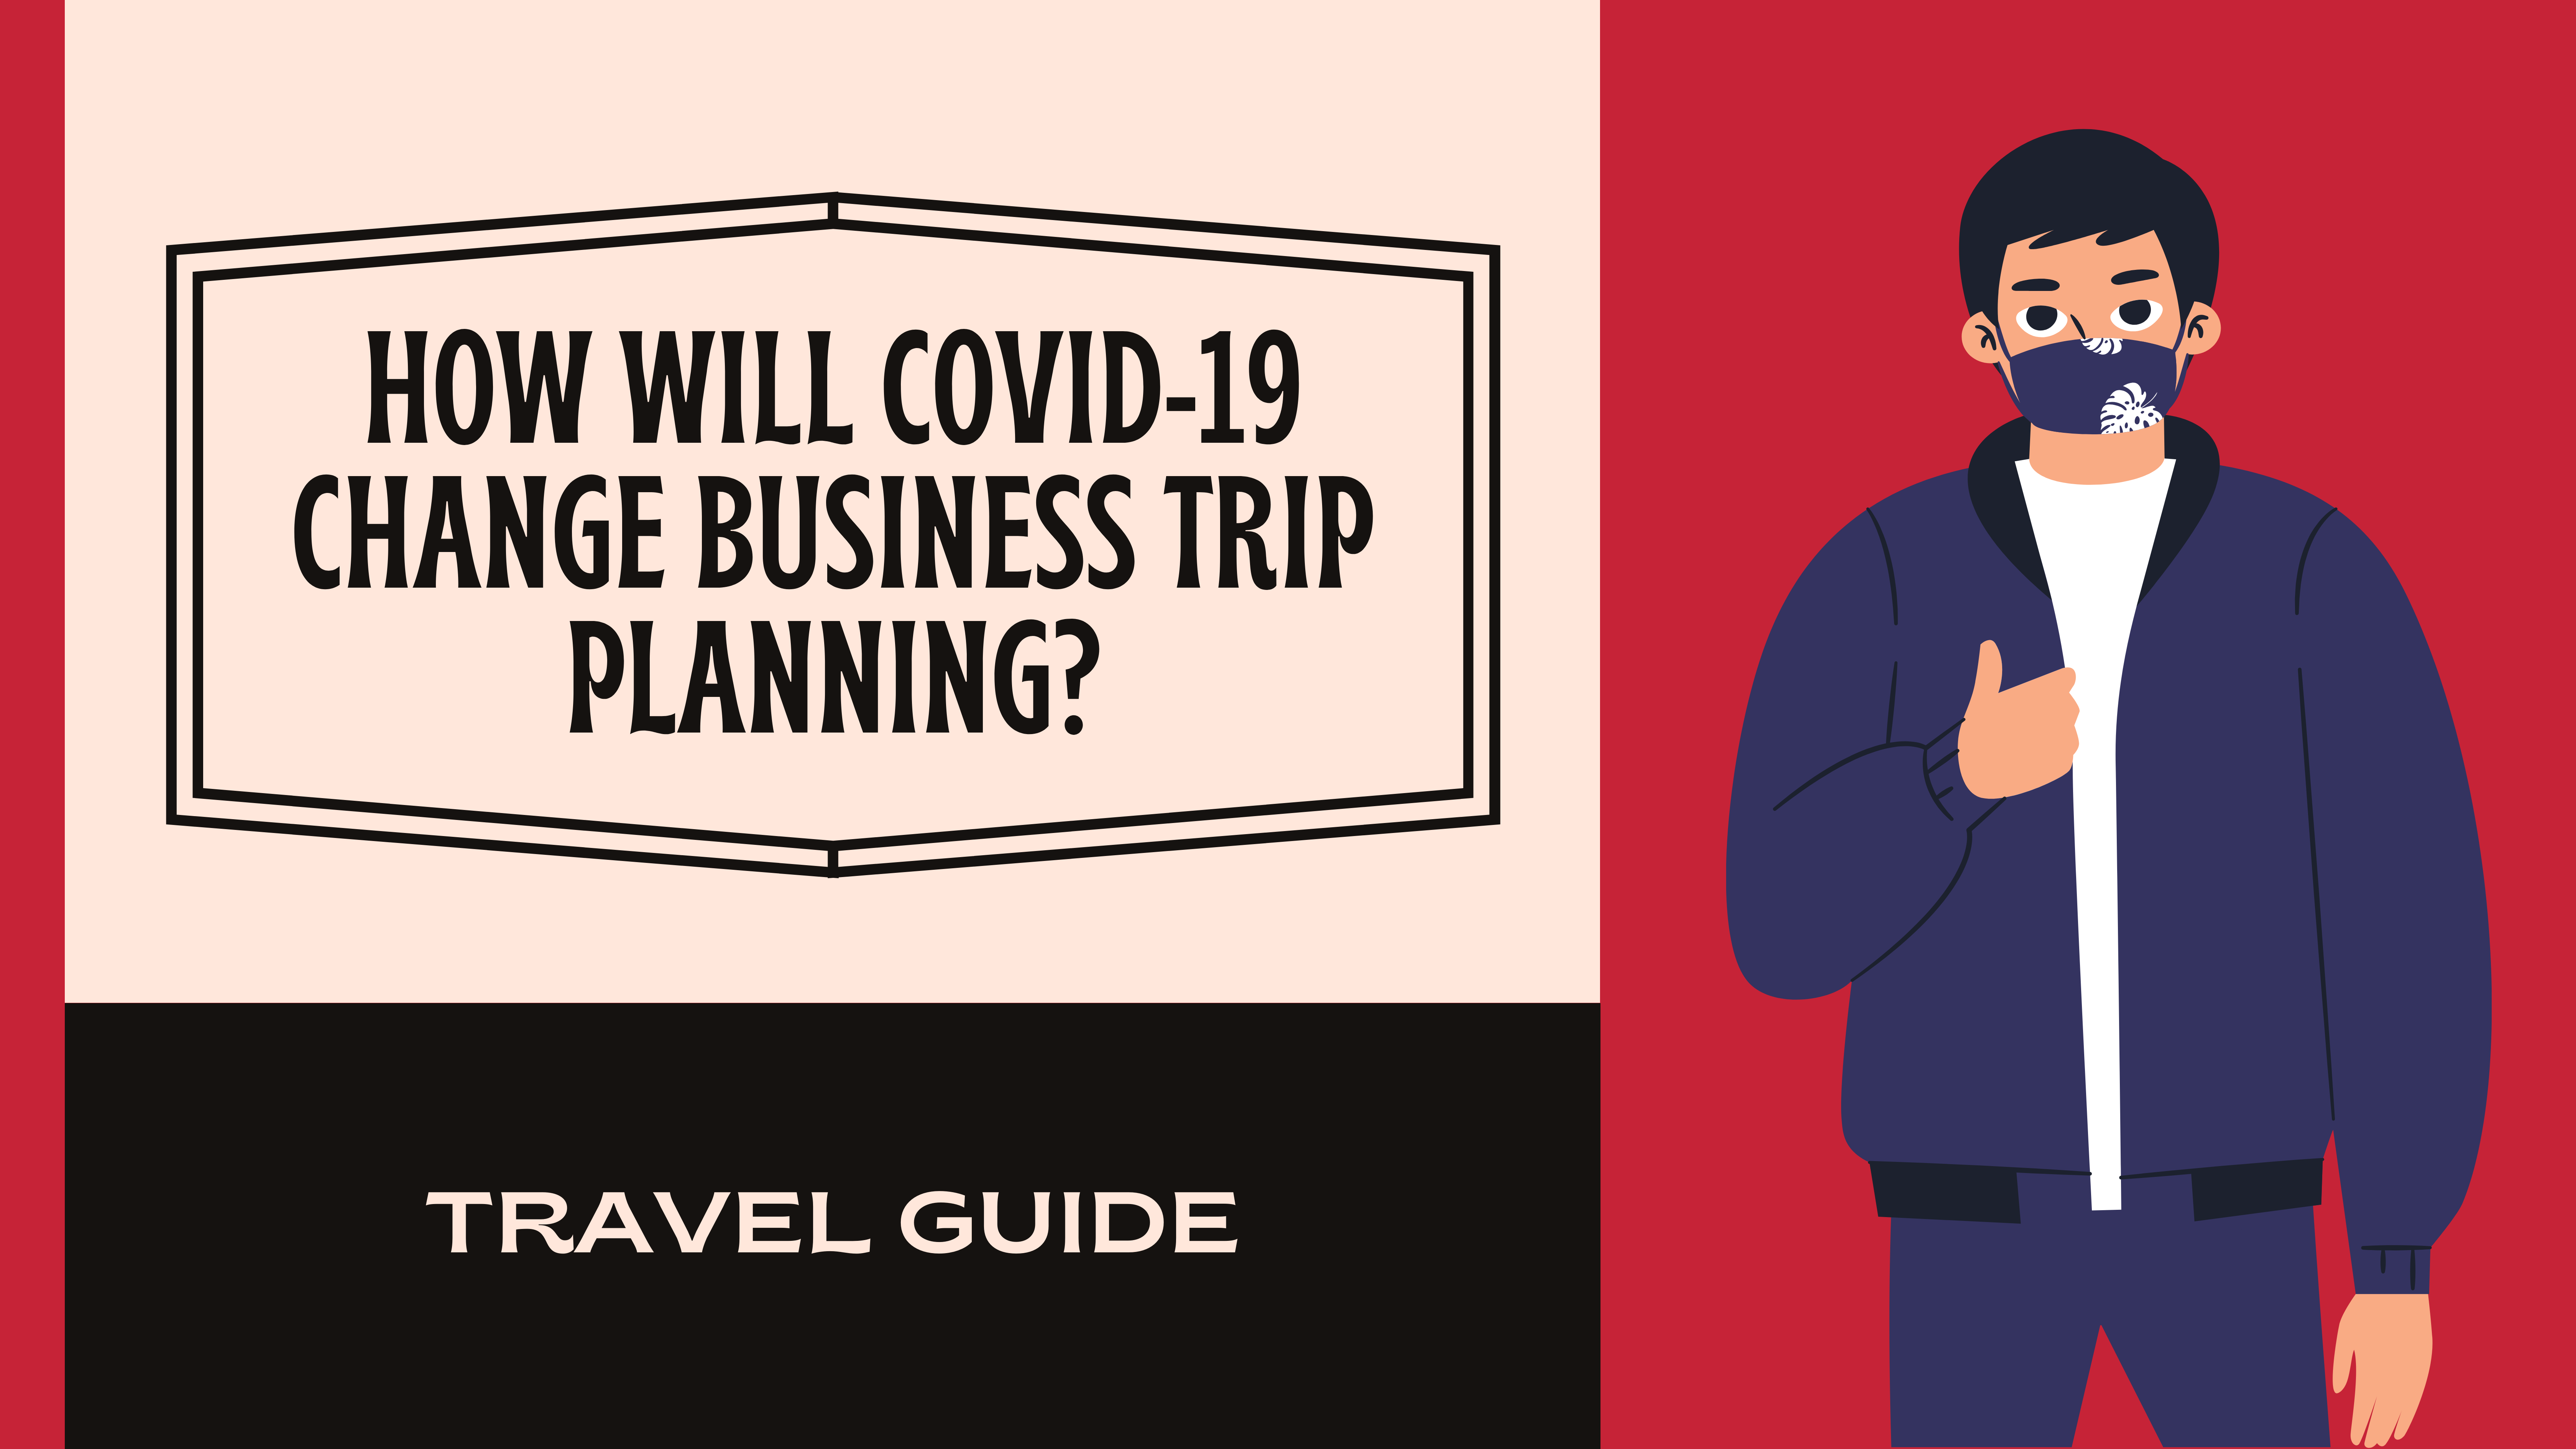 How will covid-19 change business trip planning